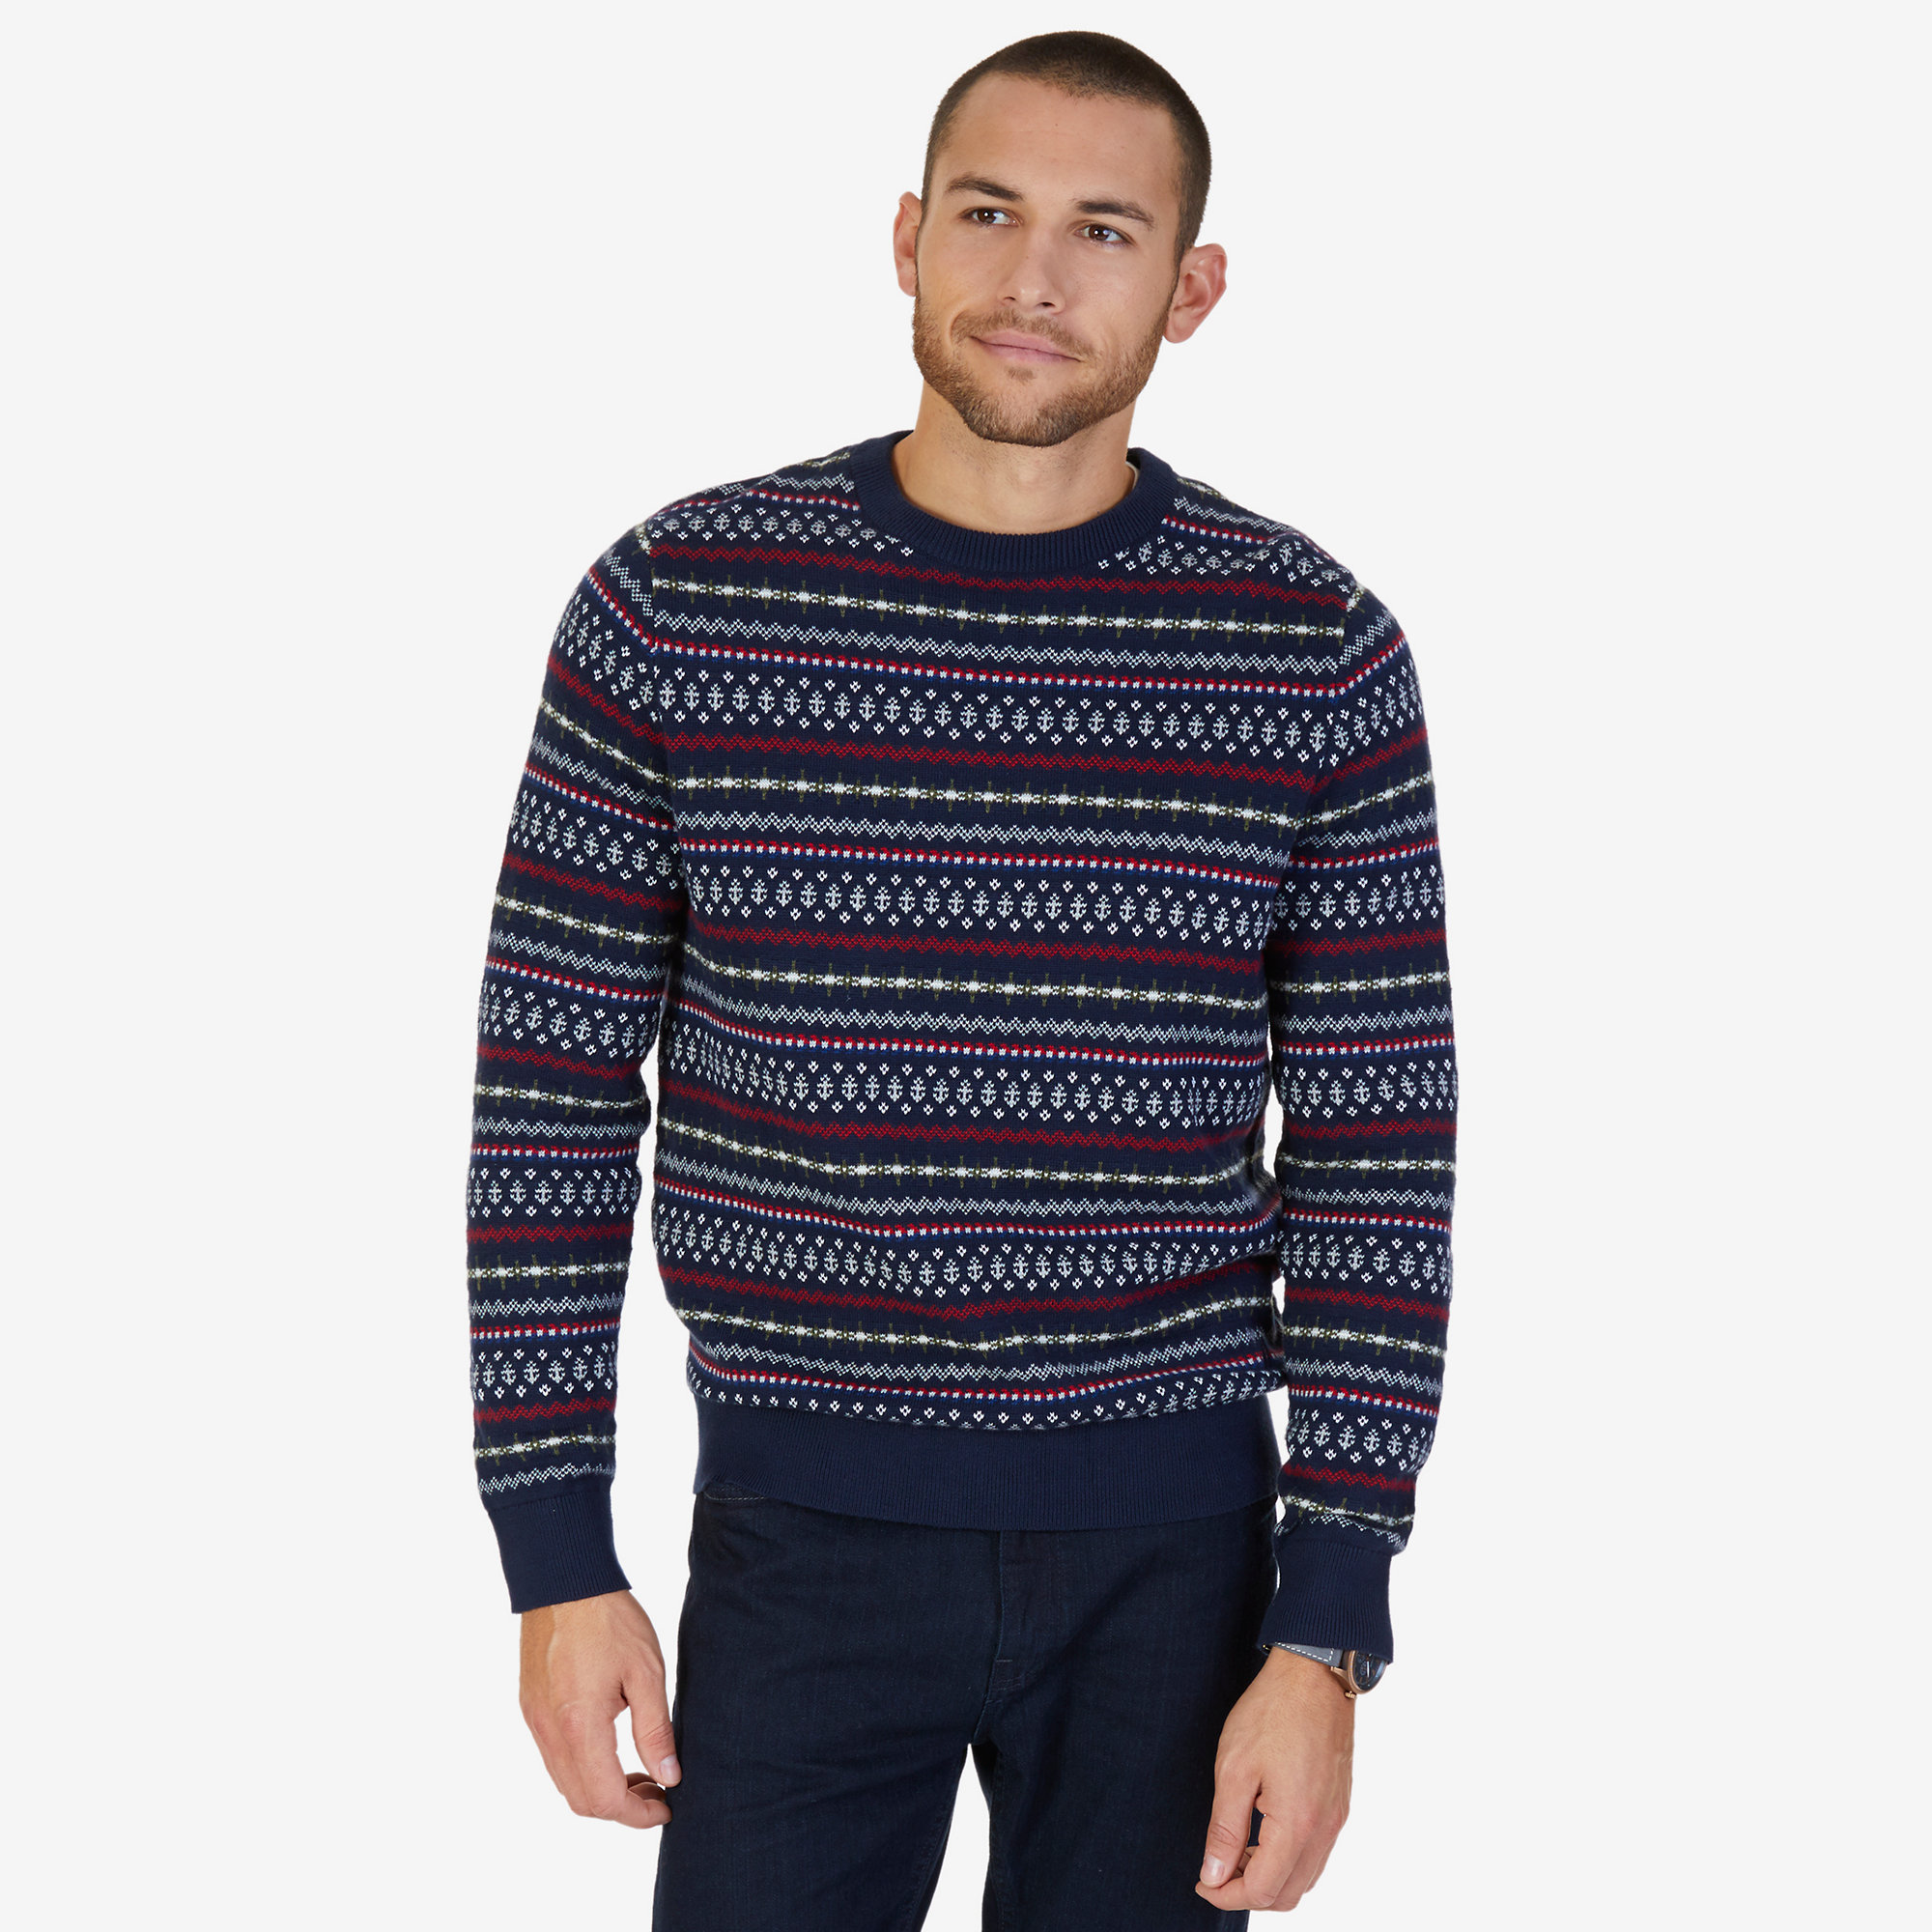 Mens Sweaters | Crew Neck, Cable Knit & Fisherman Sweaters | Nautica